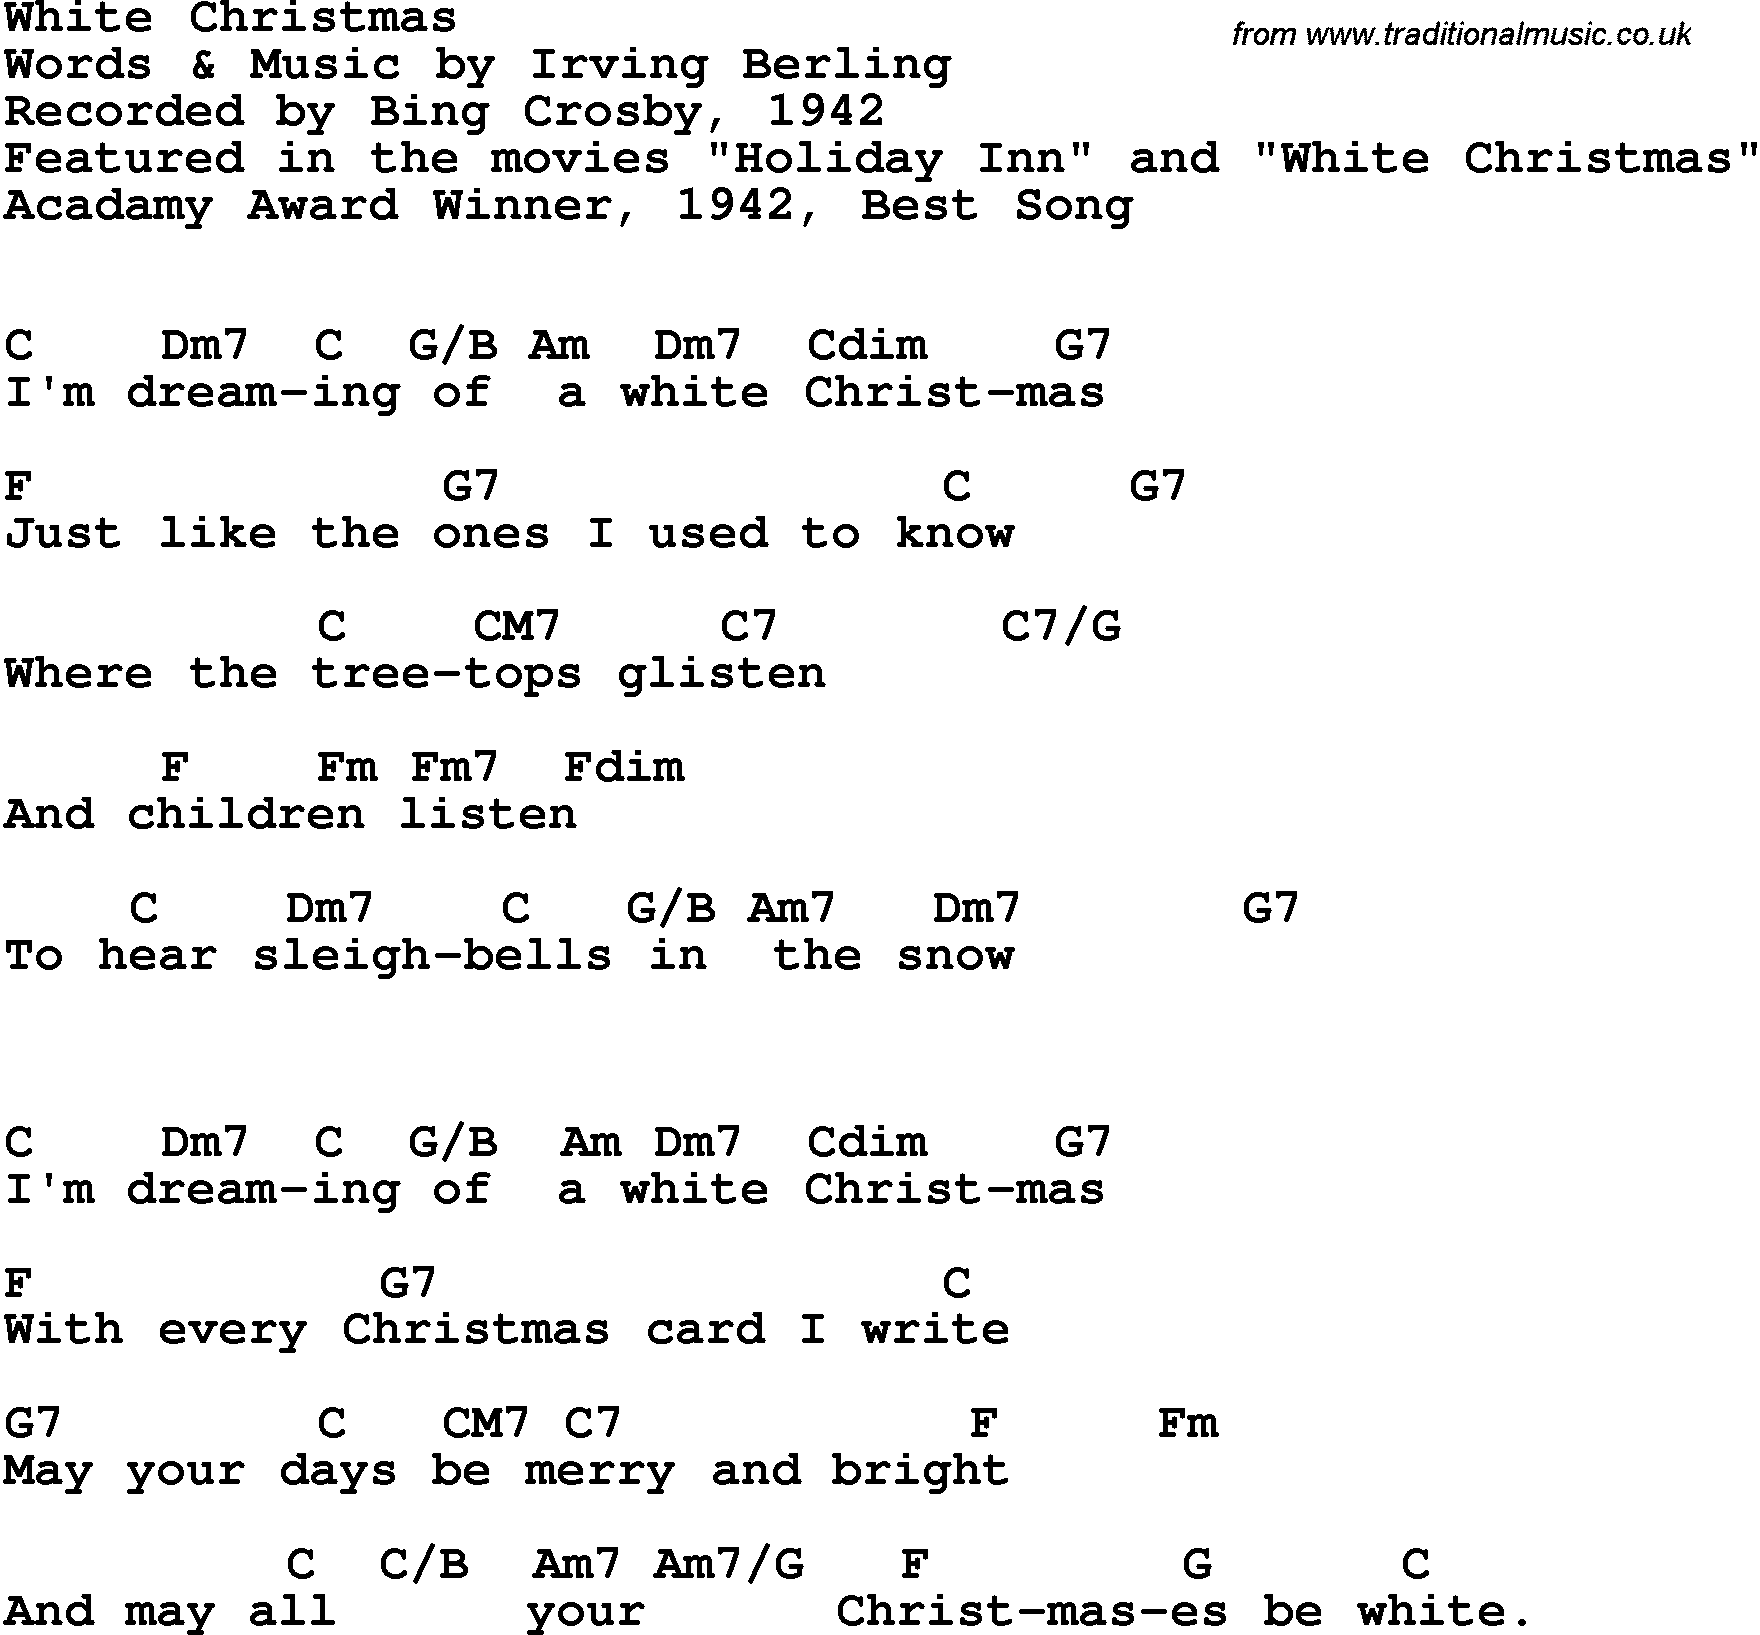 Song lyrics with guitar chords for White Christmas - Bing Crosby, 1942